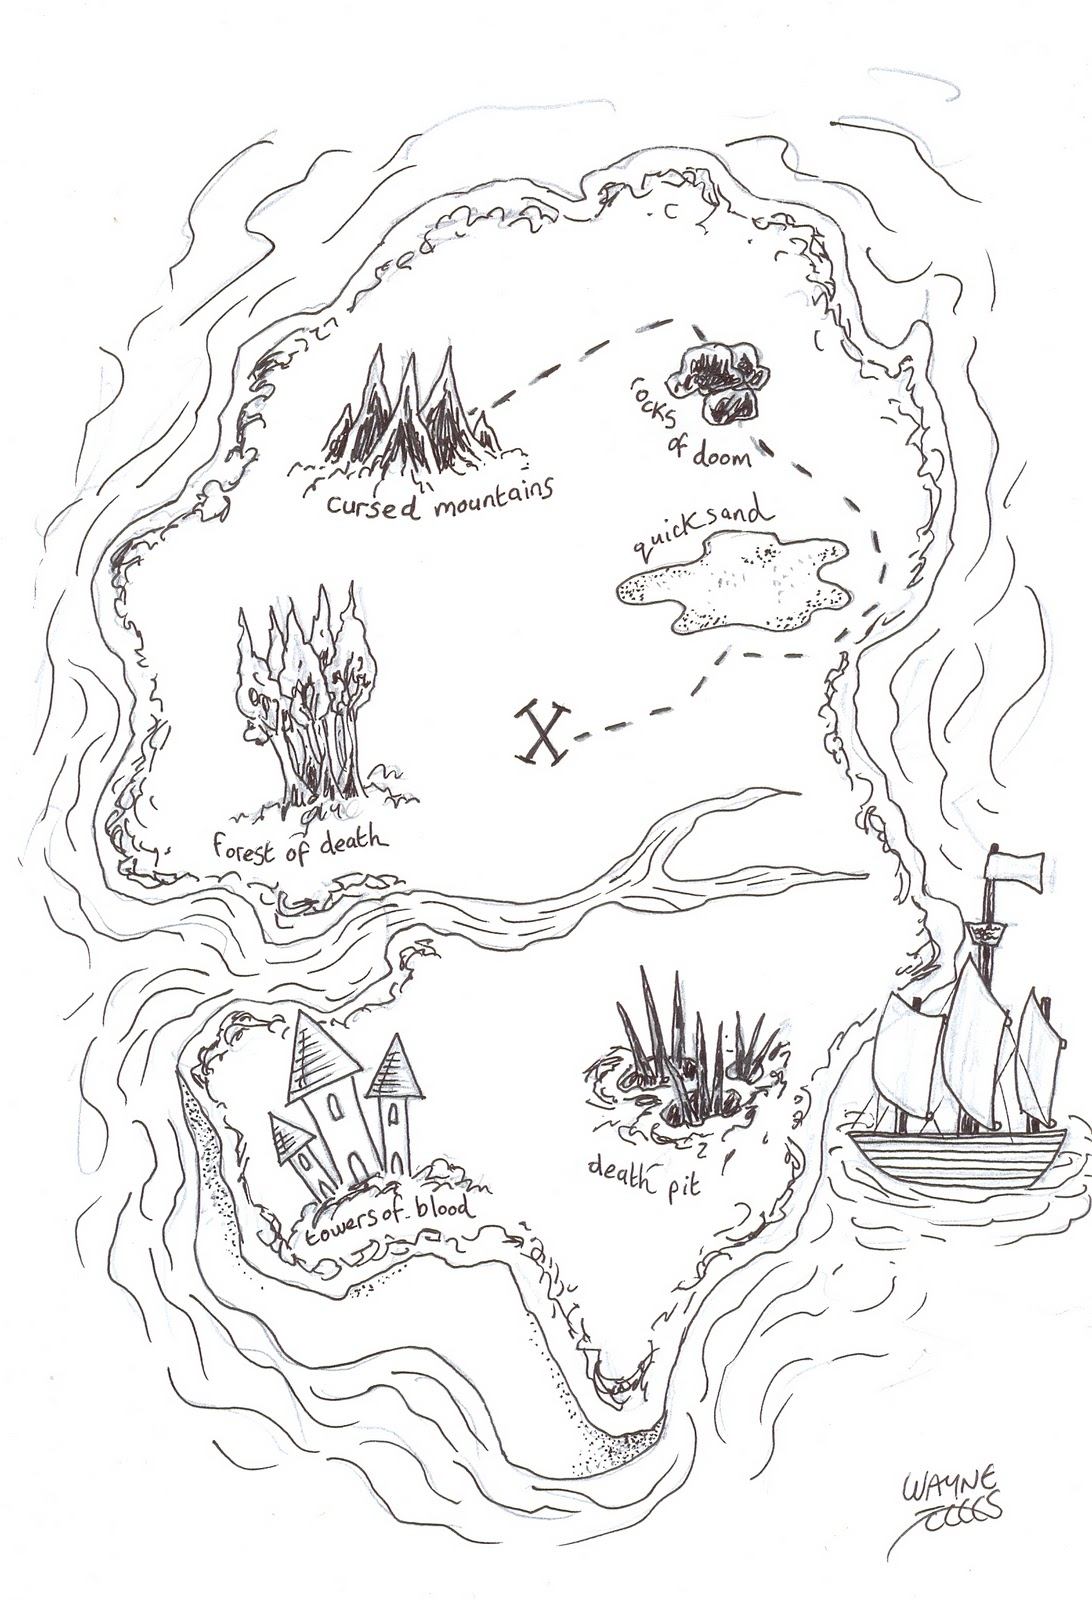 wayne tully horror art how to draw and create a treasure map part 2